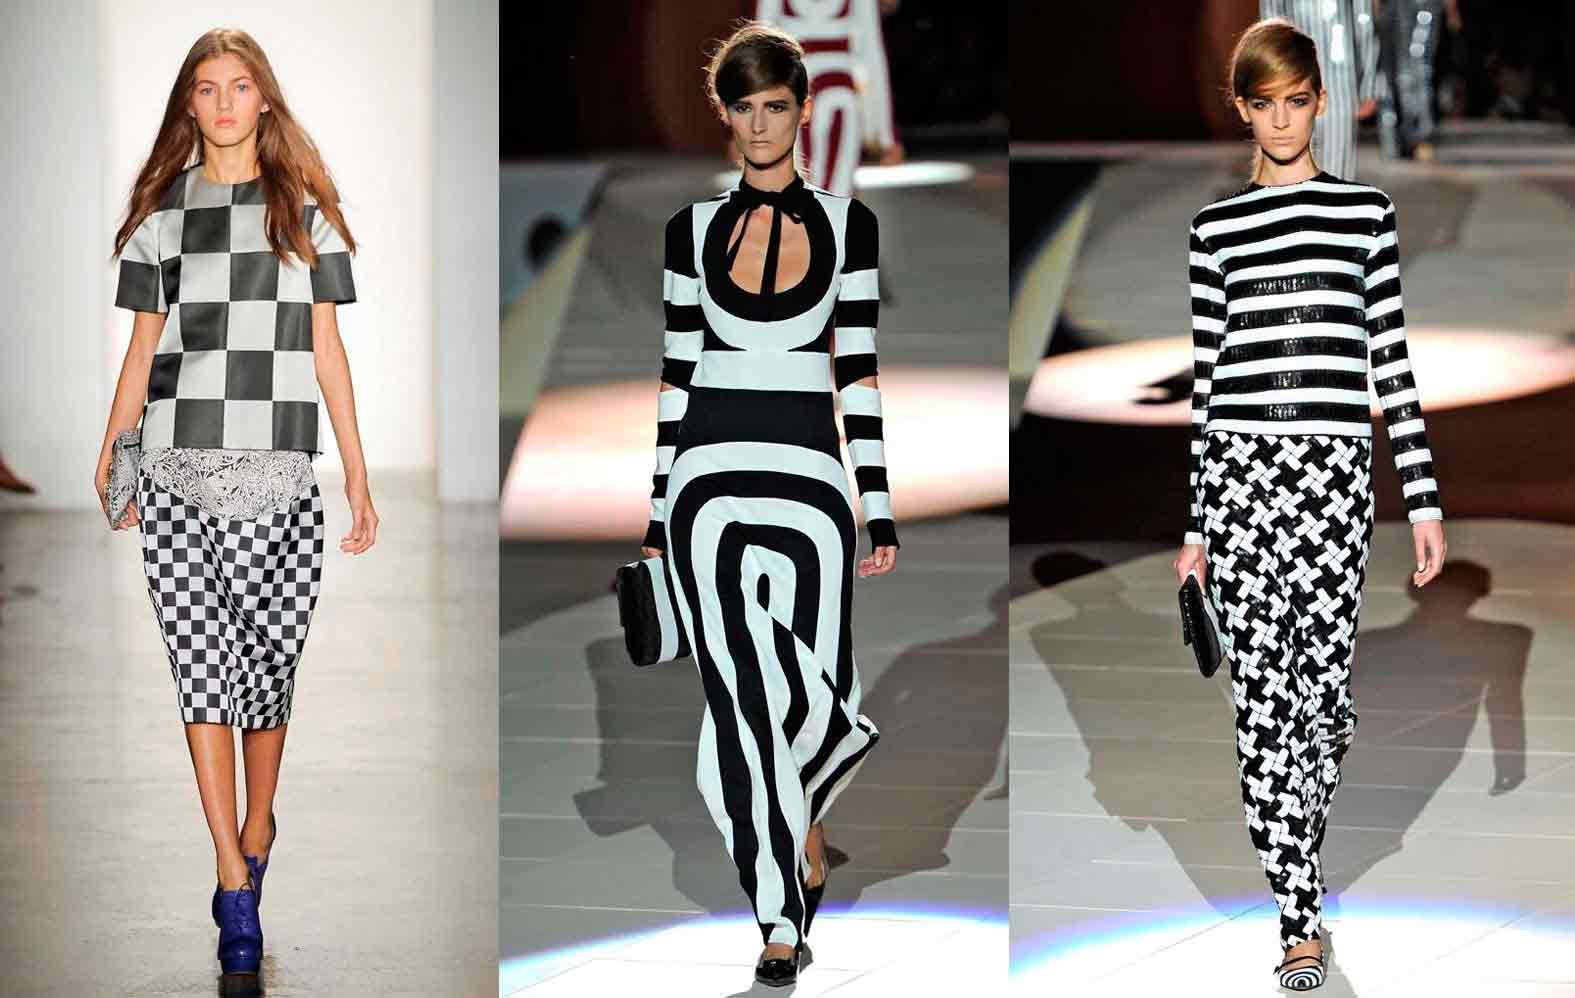 Optical illusions in fashion